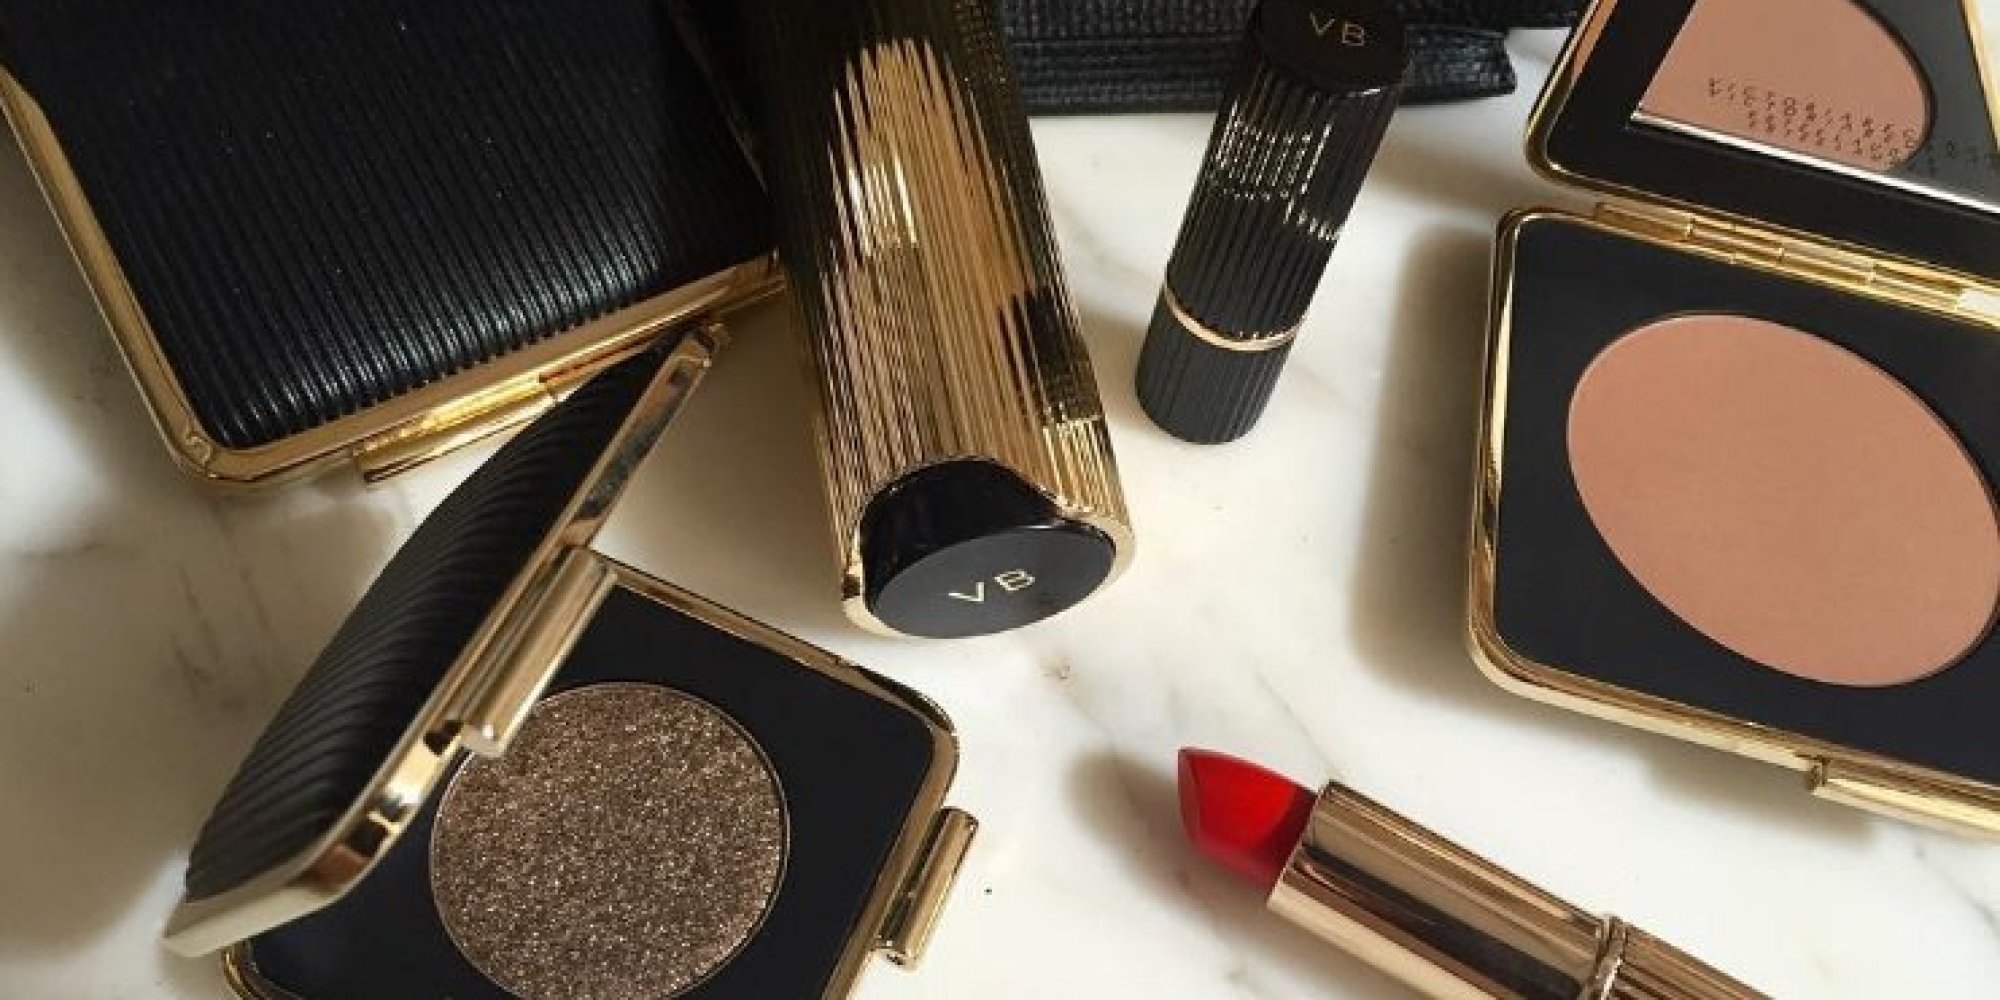 Victoria Beckham Launches Cosmetics Collection With Estee ... Victoria Beckham Estee Lauder